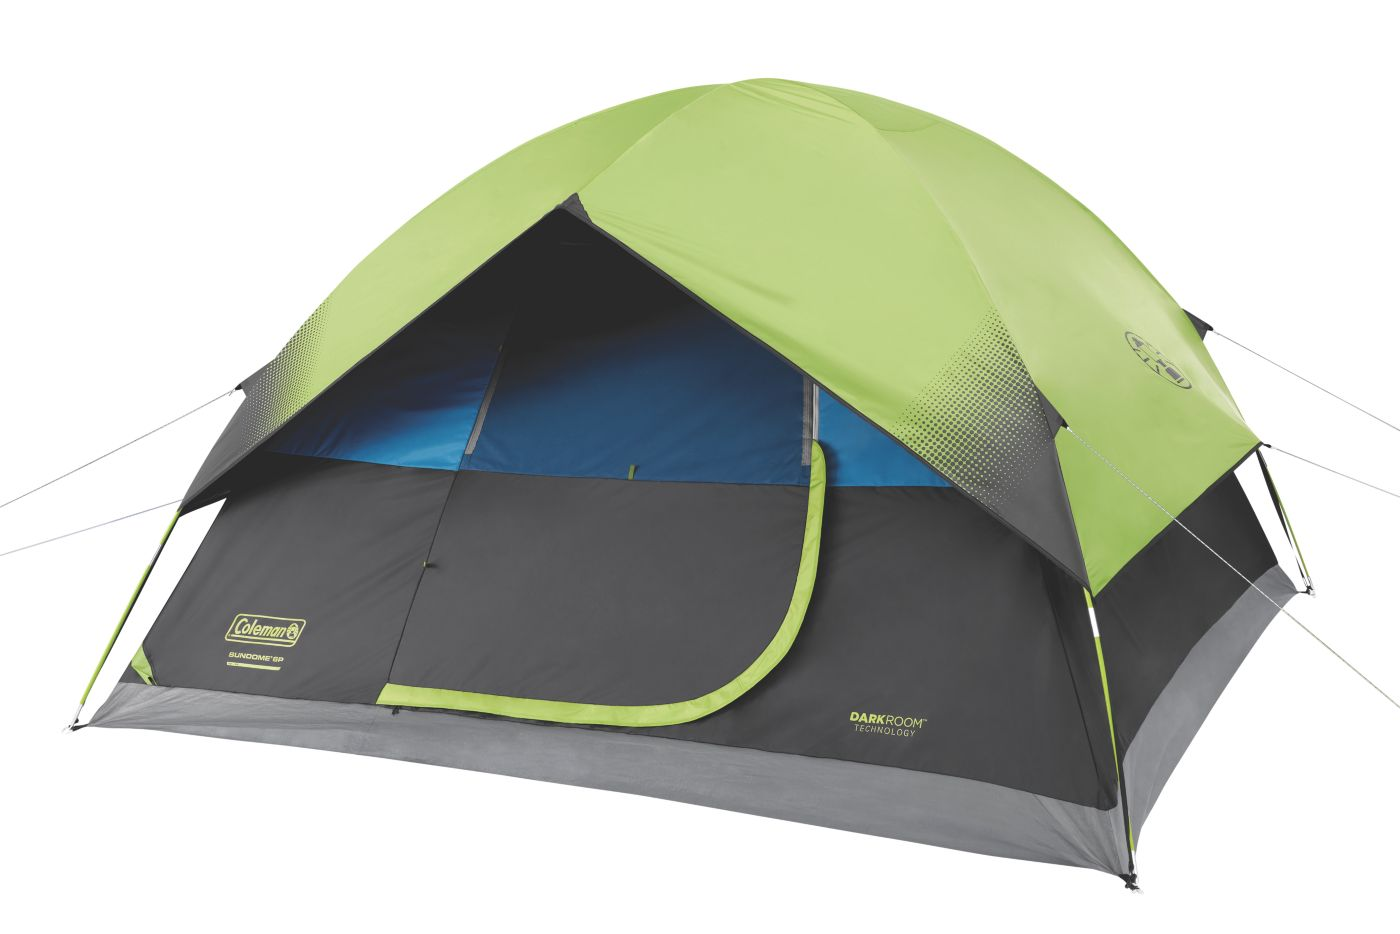 ... 6-Person Dark Room Sundome Tent image 1 ...  sc 1 st  Coleman & 6-Person Dark Room Sundome Tent | Coleman